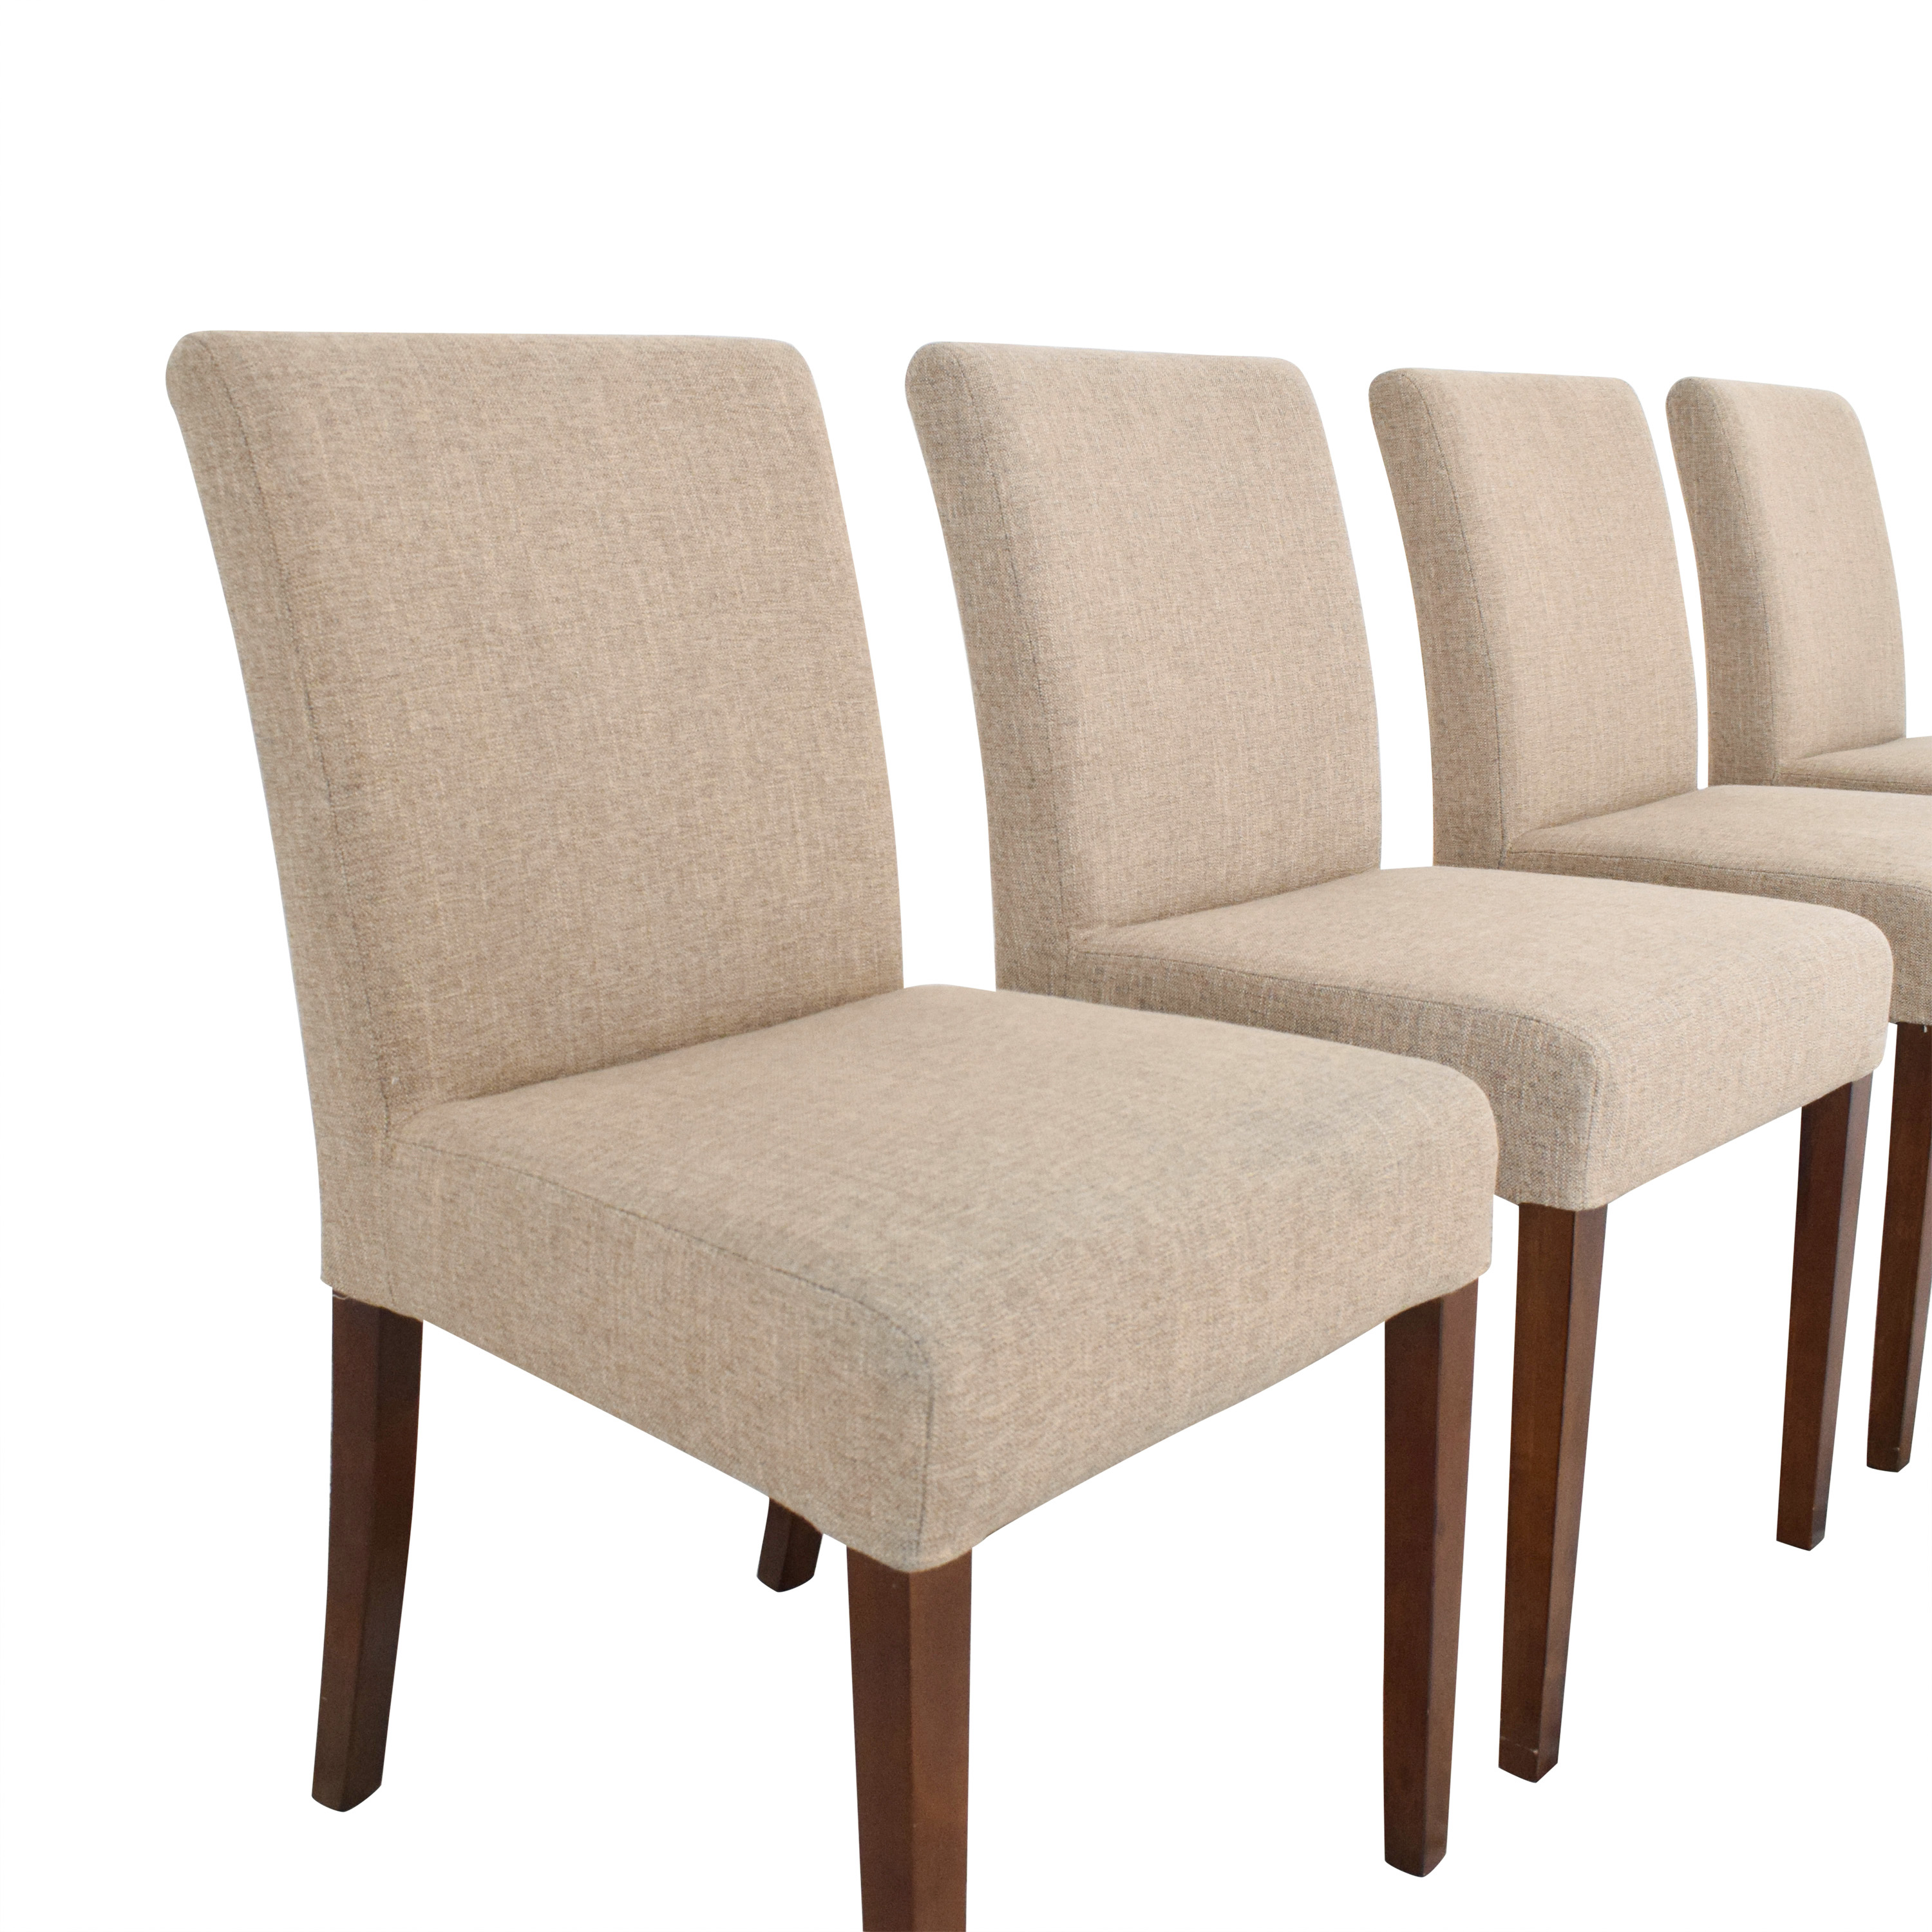 shop Crate & Barrel Lowe Dining Chairs Crate & Barrel Dining Chairs